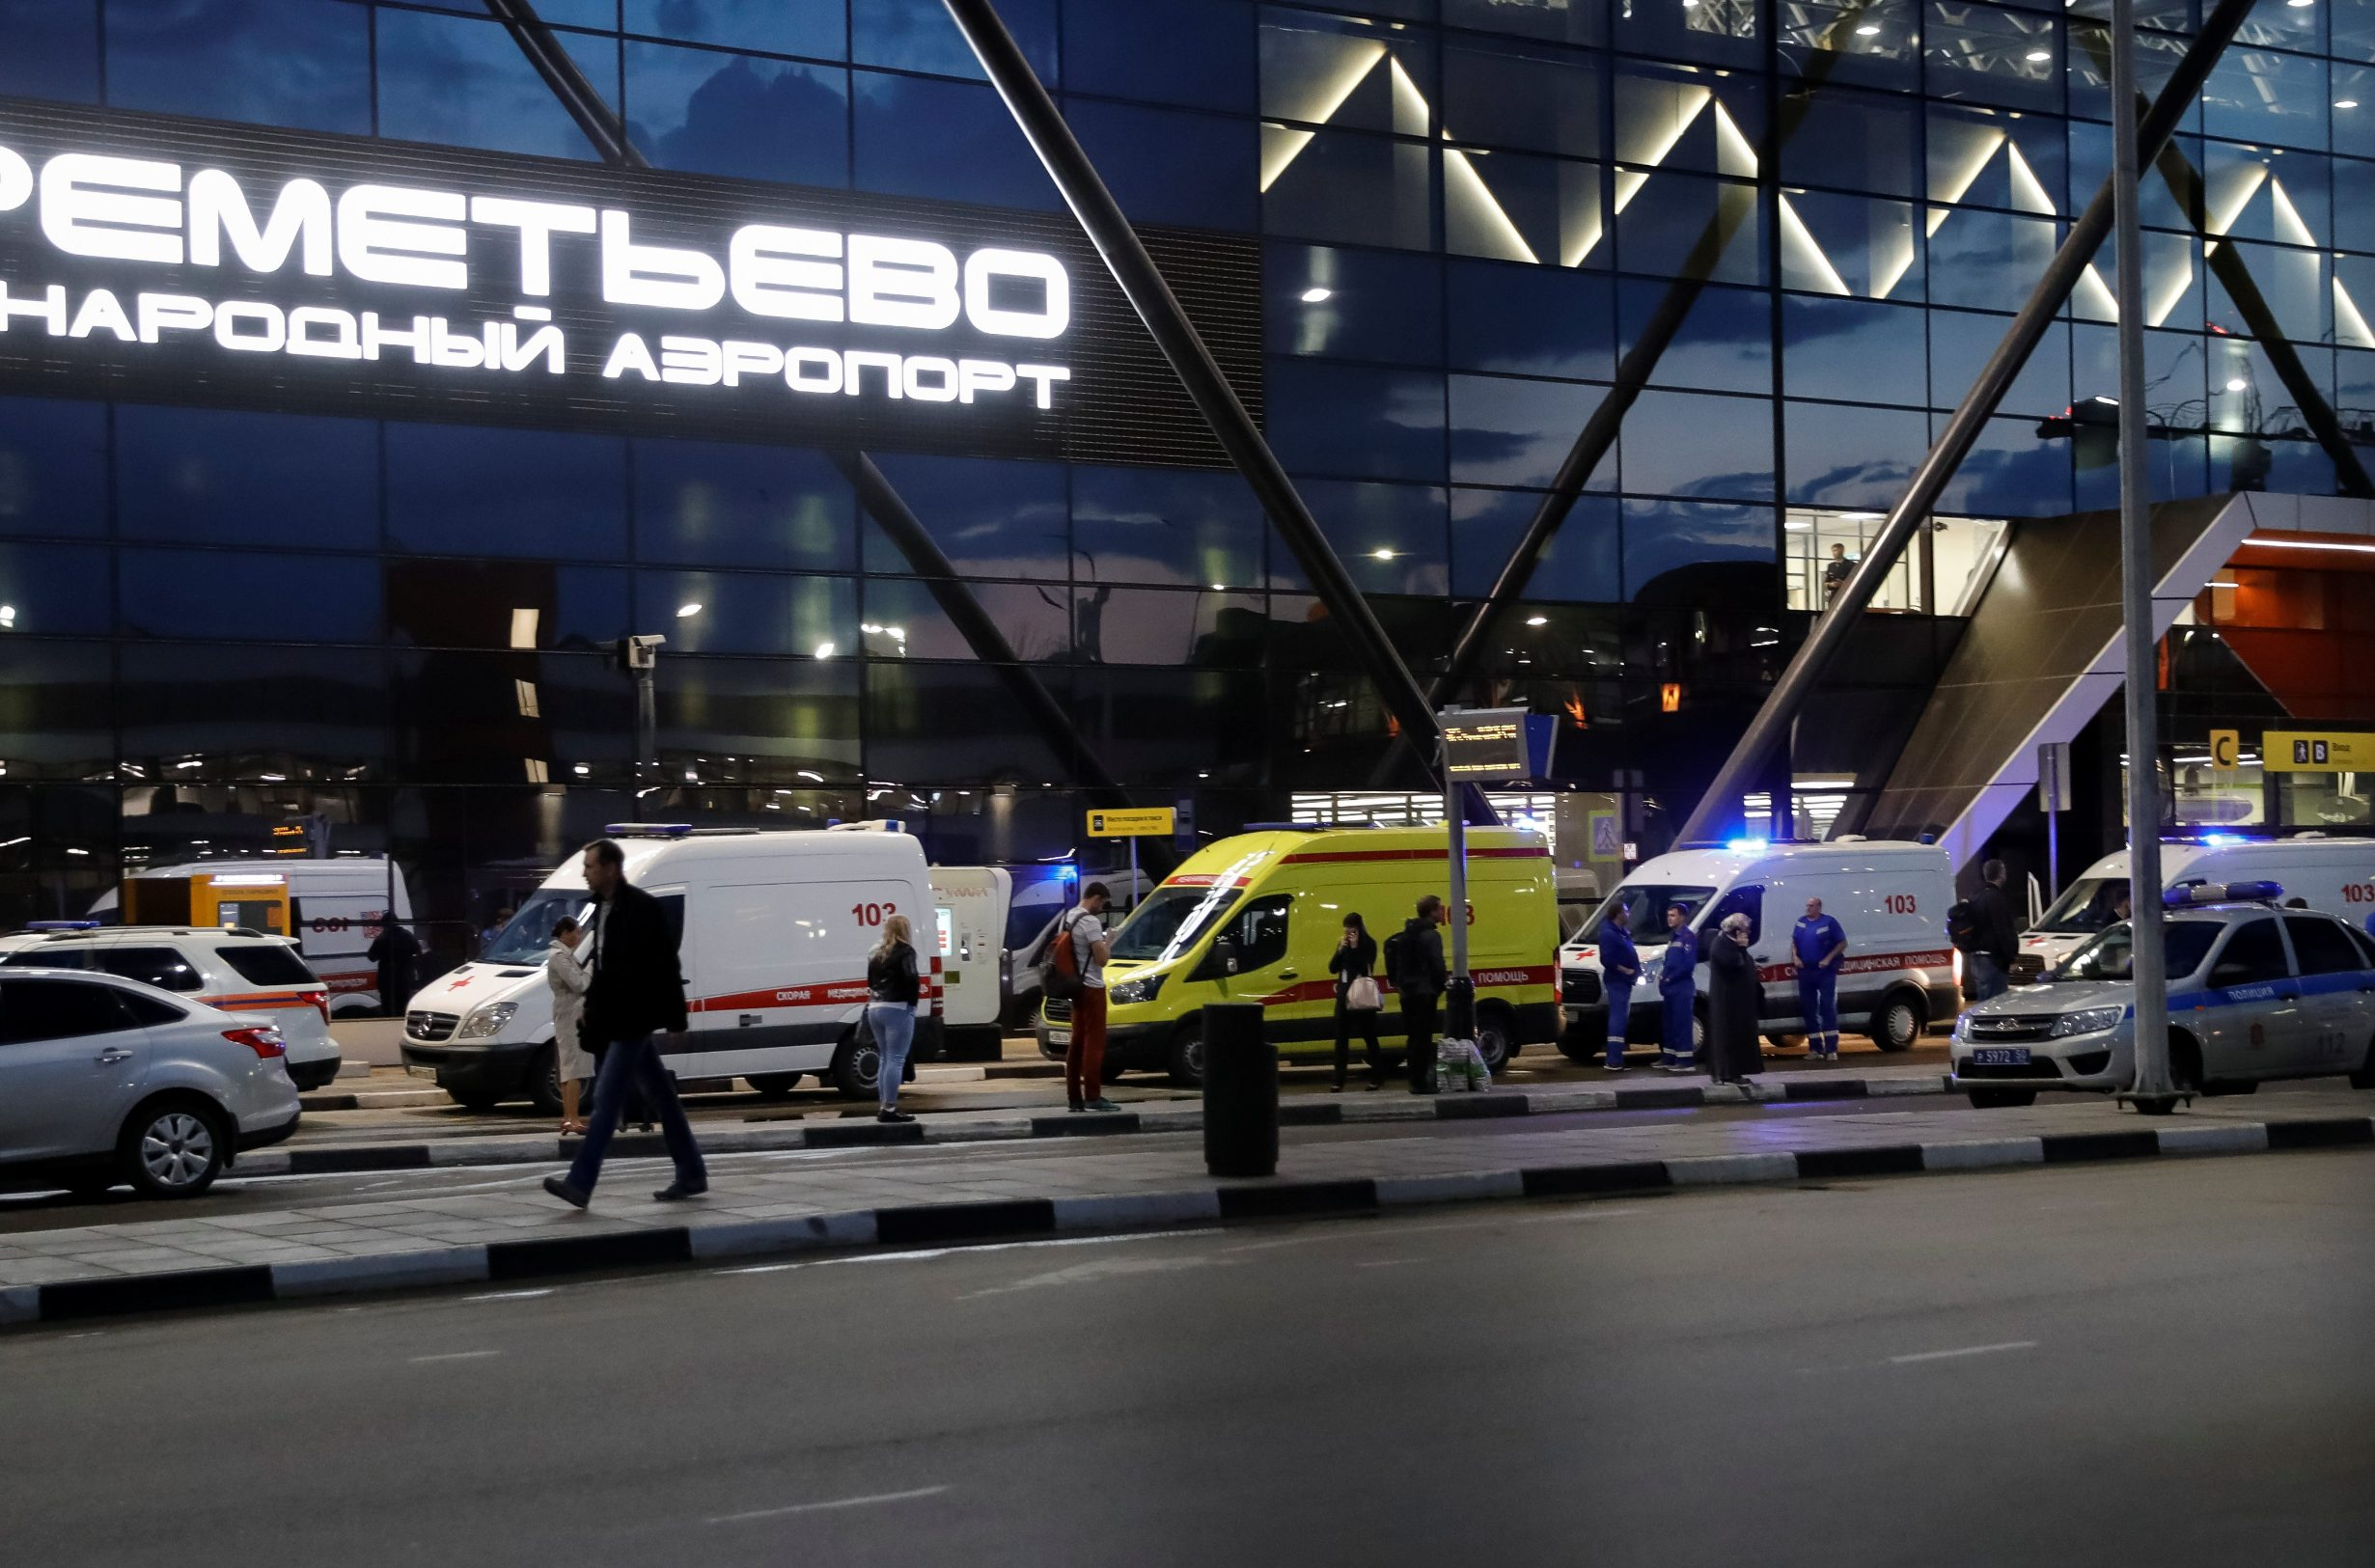 Ambulances wait in front of the terminal building after a passenger plane made an emergency landing at the Sheremetyevo Airport outside Moscow, Russia May 5, 2019. REUTERS/Tatyana Makeyeva